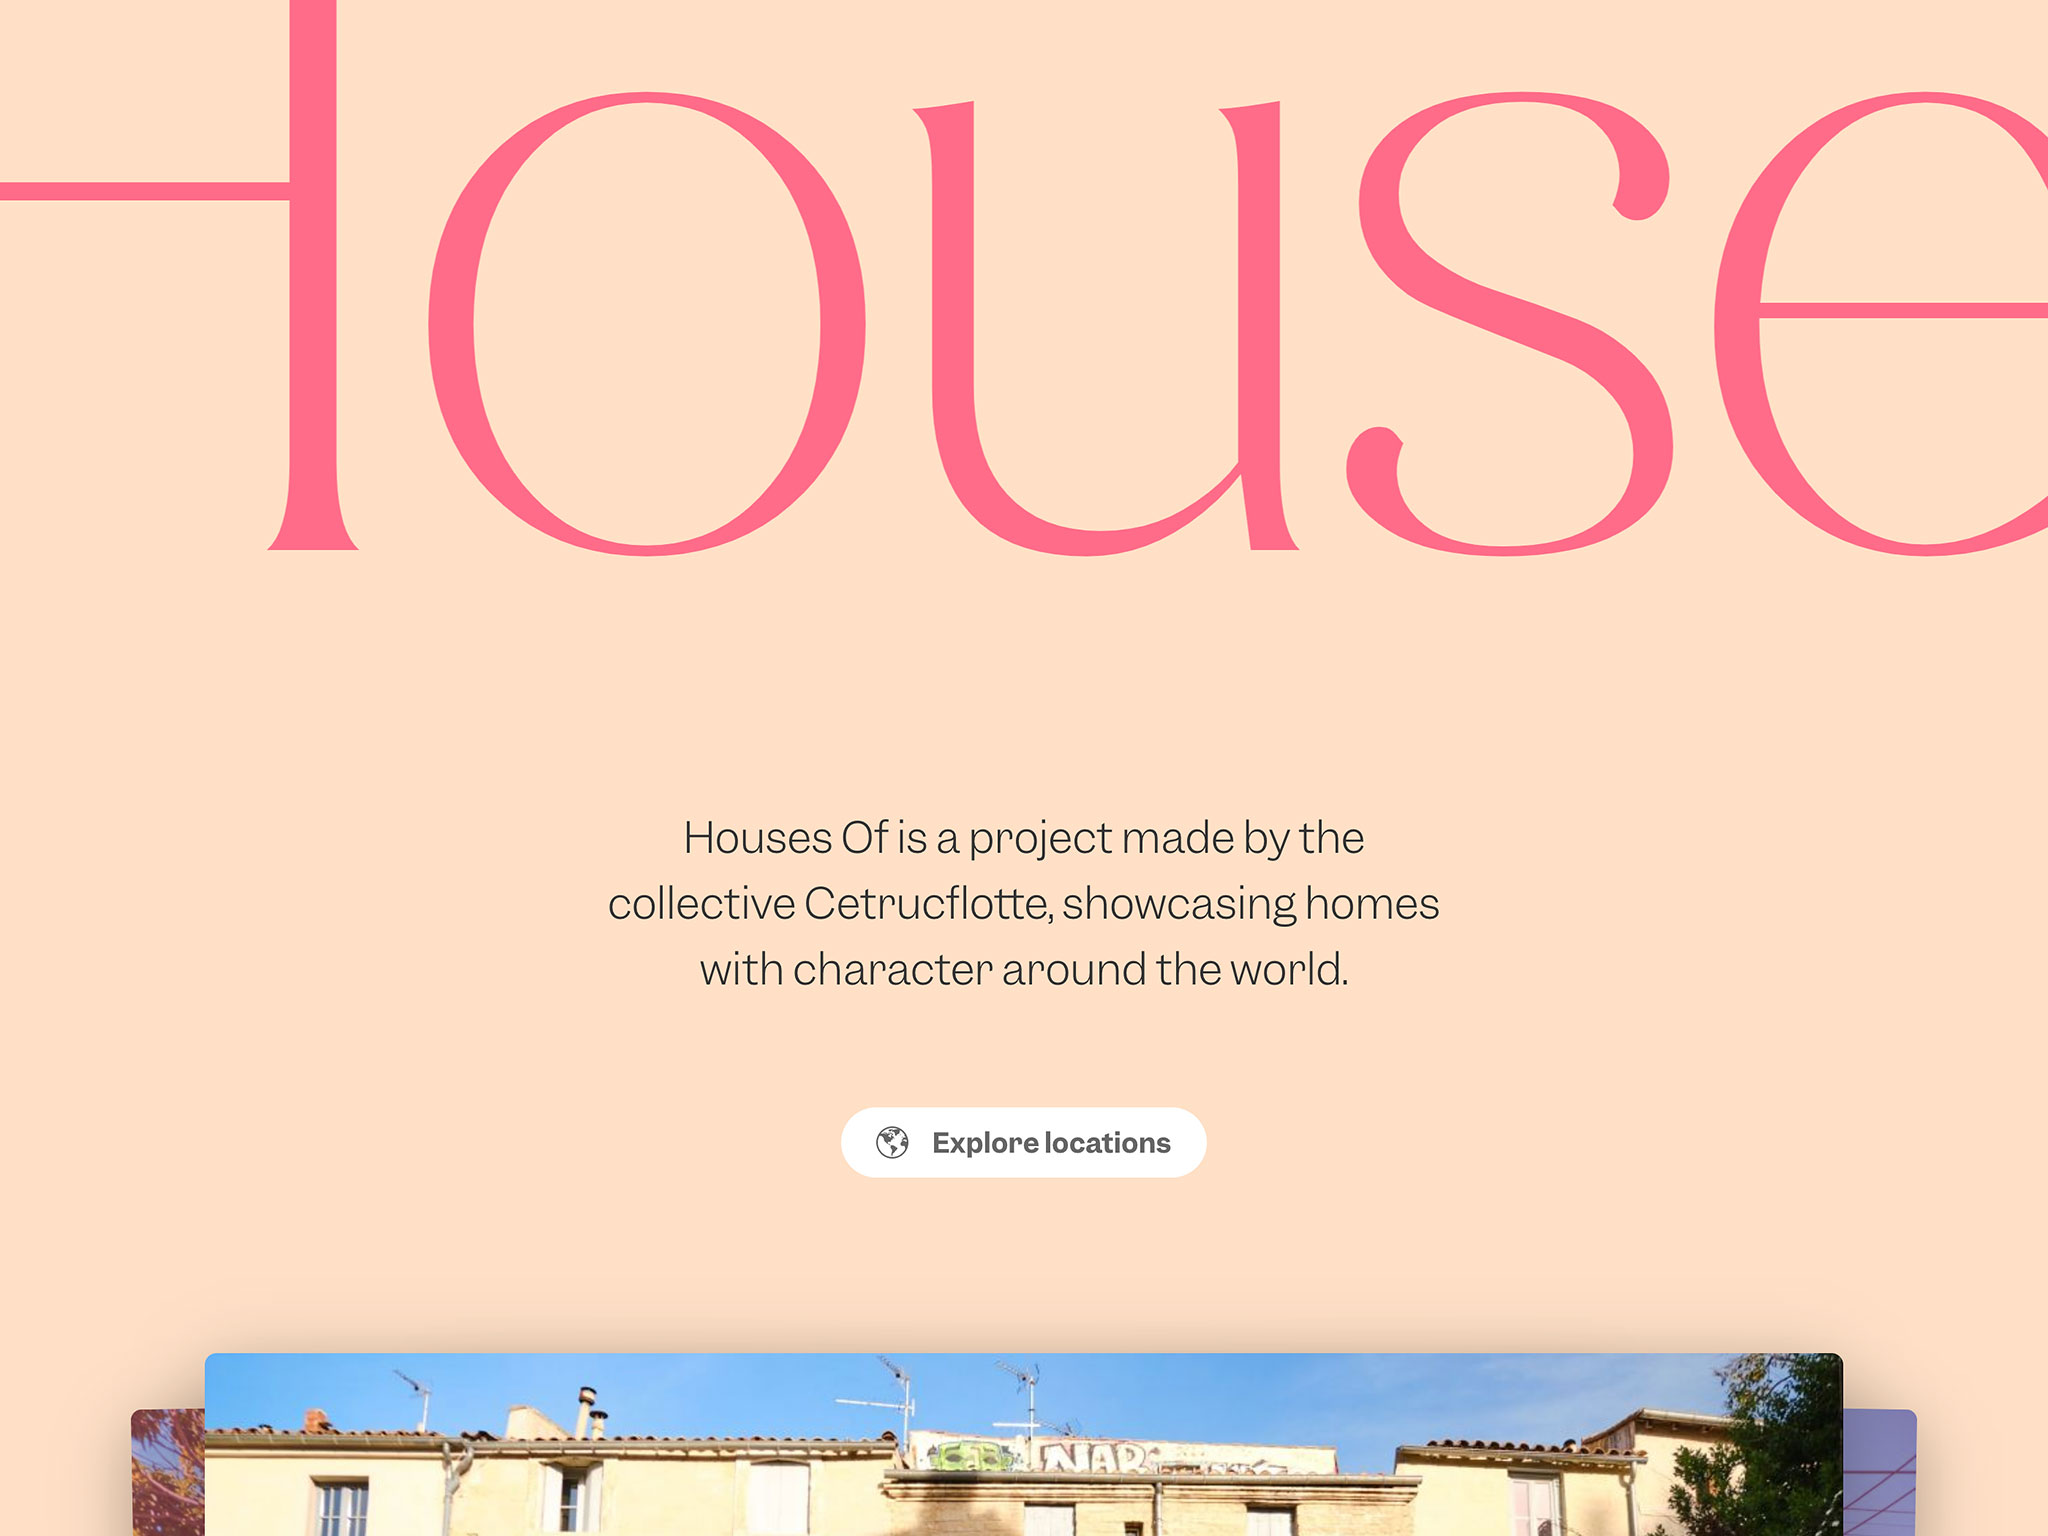 Houses Of – Beautiful houses across the globe